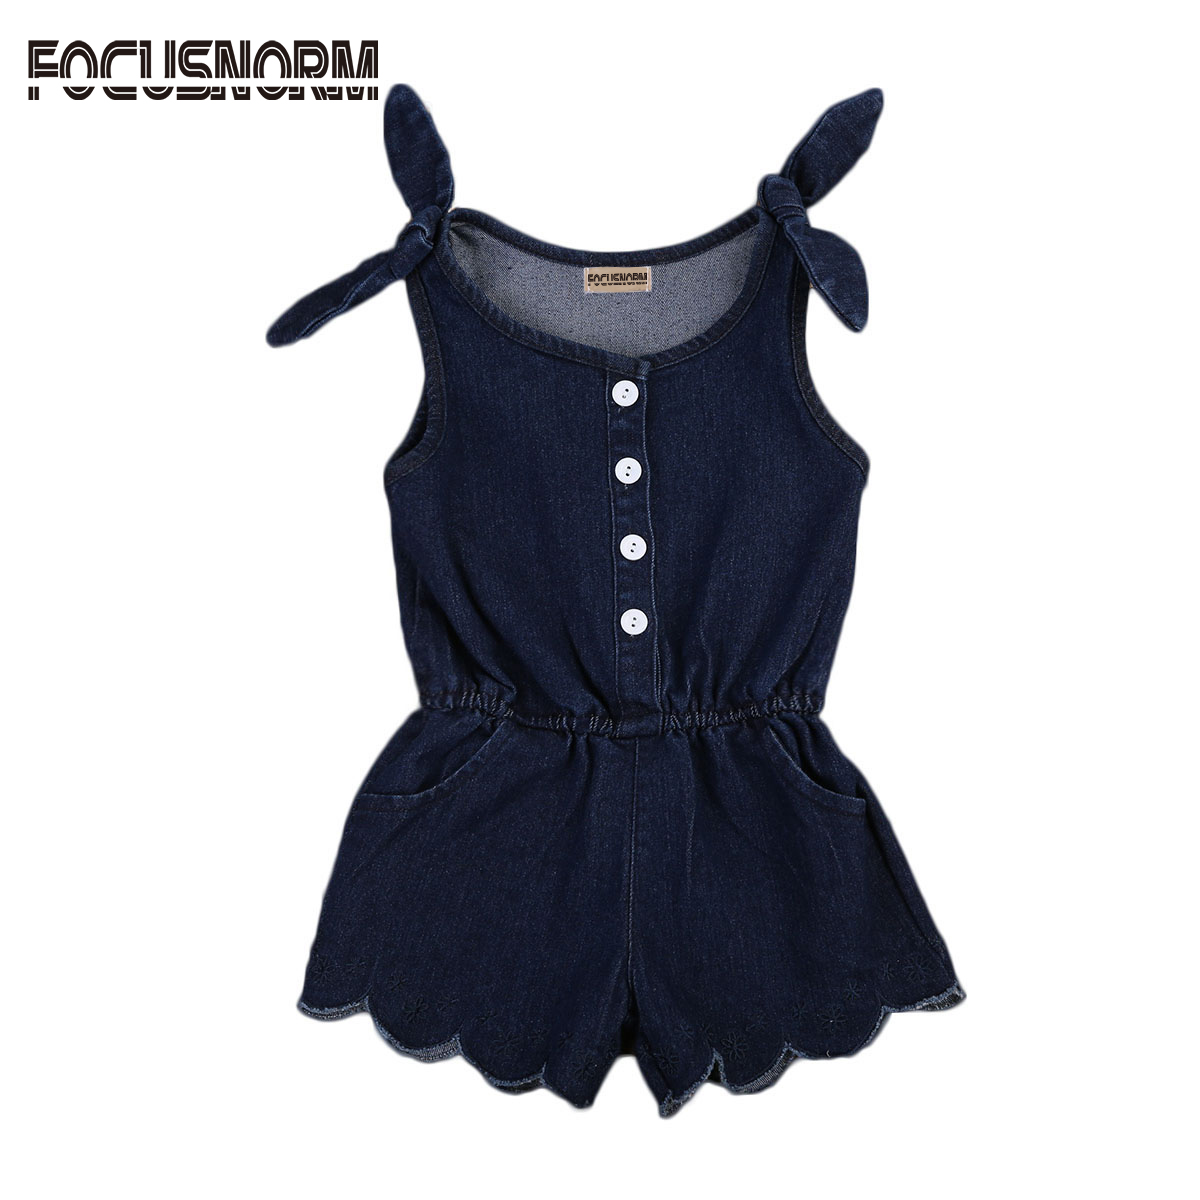 Newborn Baby Girls Kids Bow Denim Sleeveless Solid Romper Jumpsuit One Piece Outfit Sunsuit Clothes